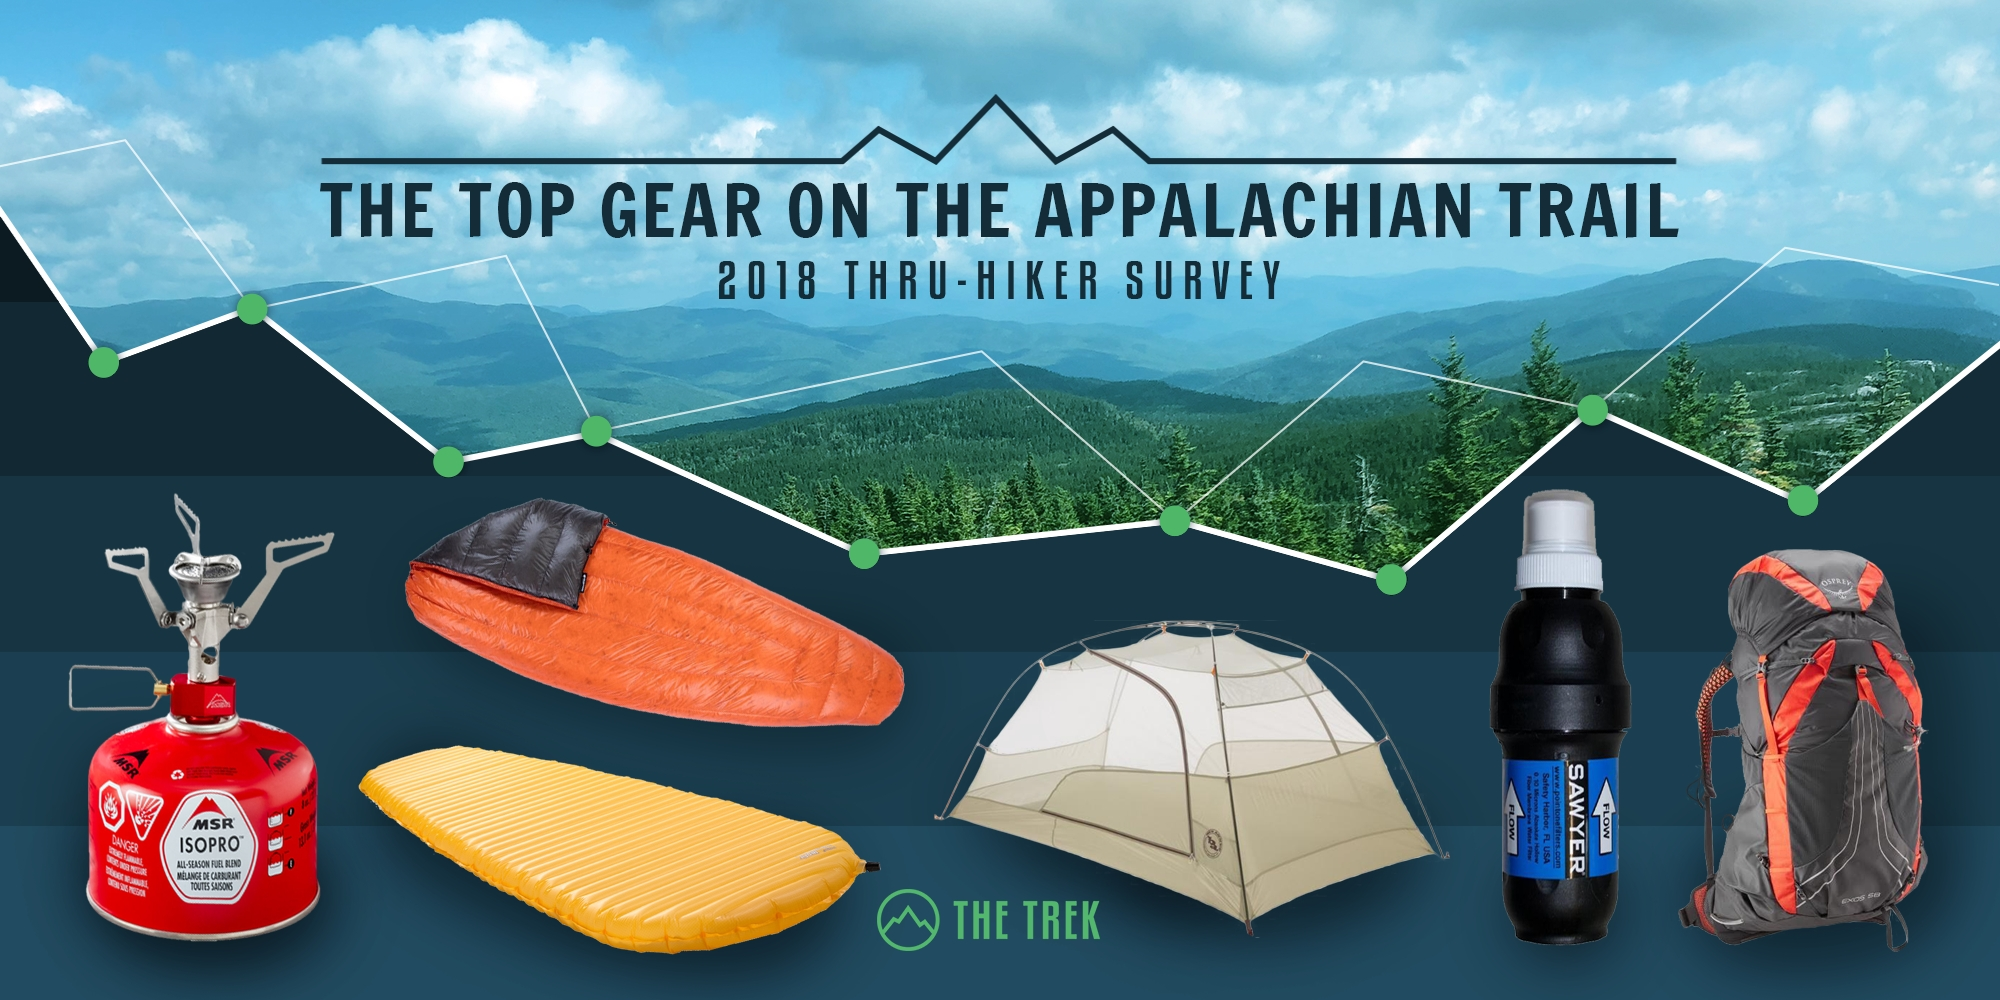 The Top Gear on the Appalachian Trail: Results from the 2018 AT Thru-Hiker Survey